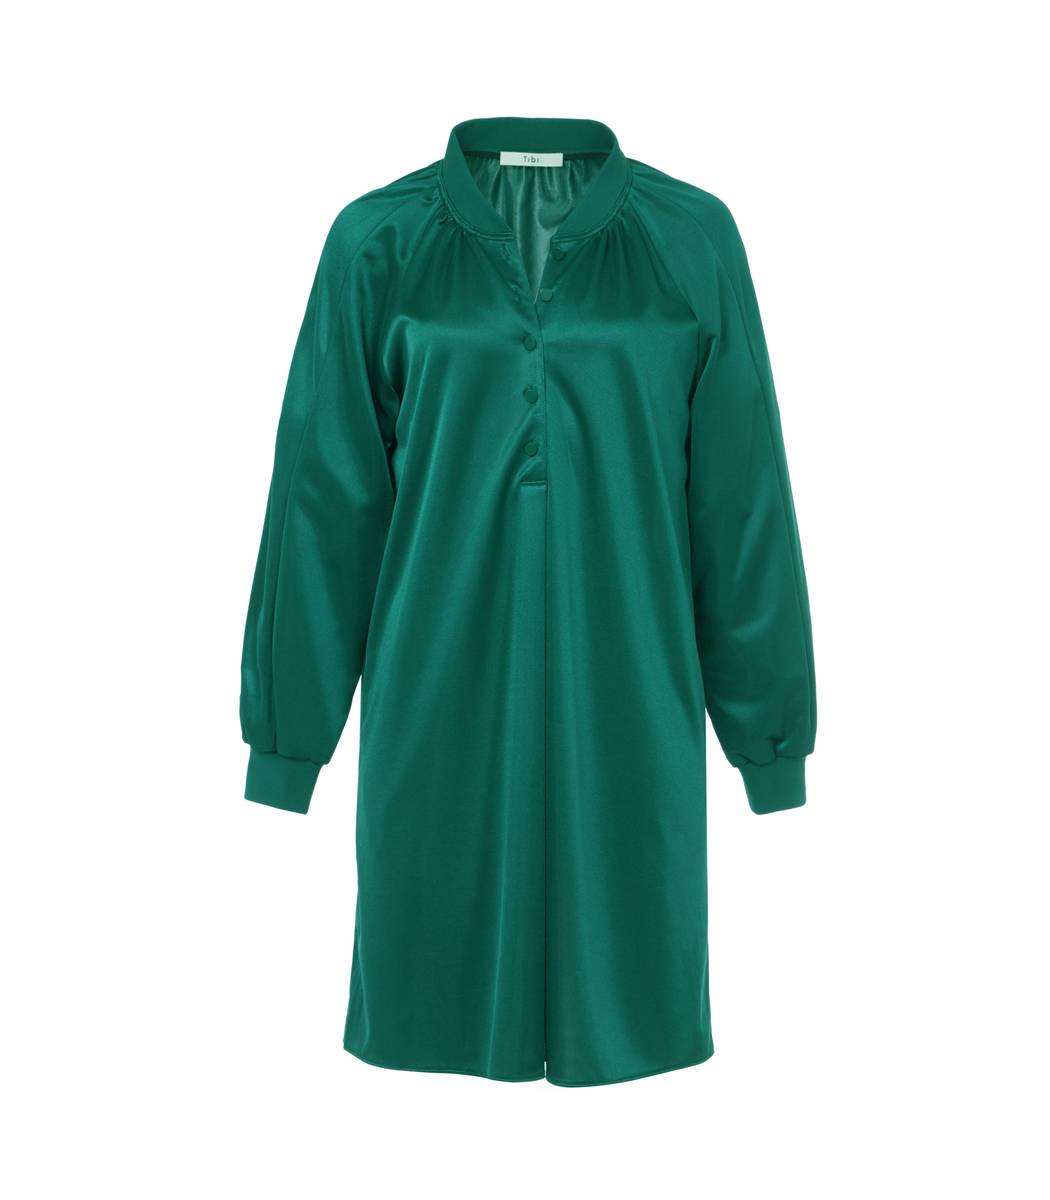 Dark Green Tech Pique Raglan Dress